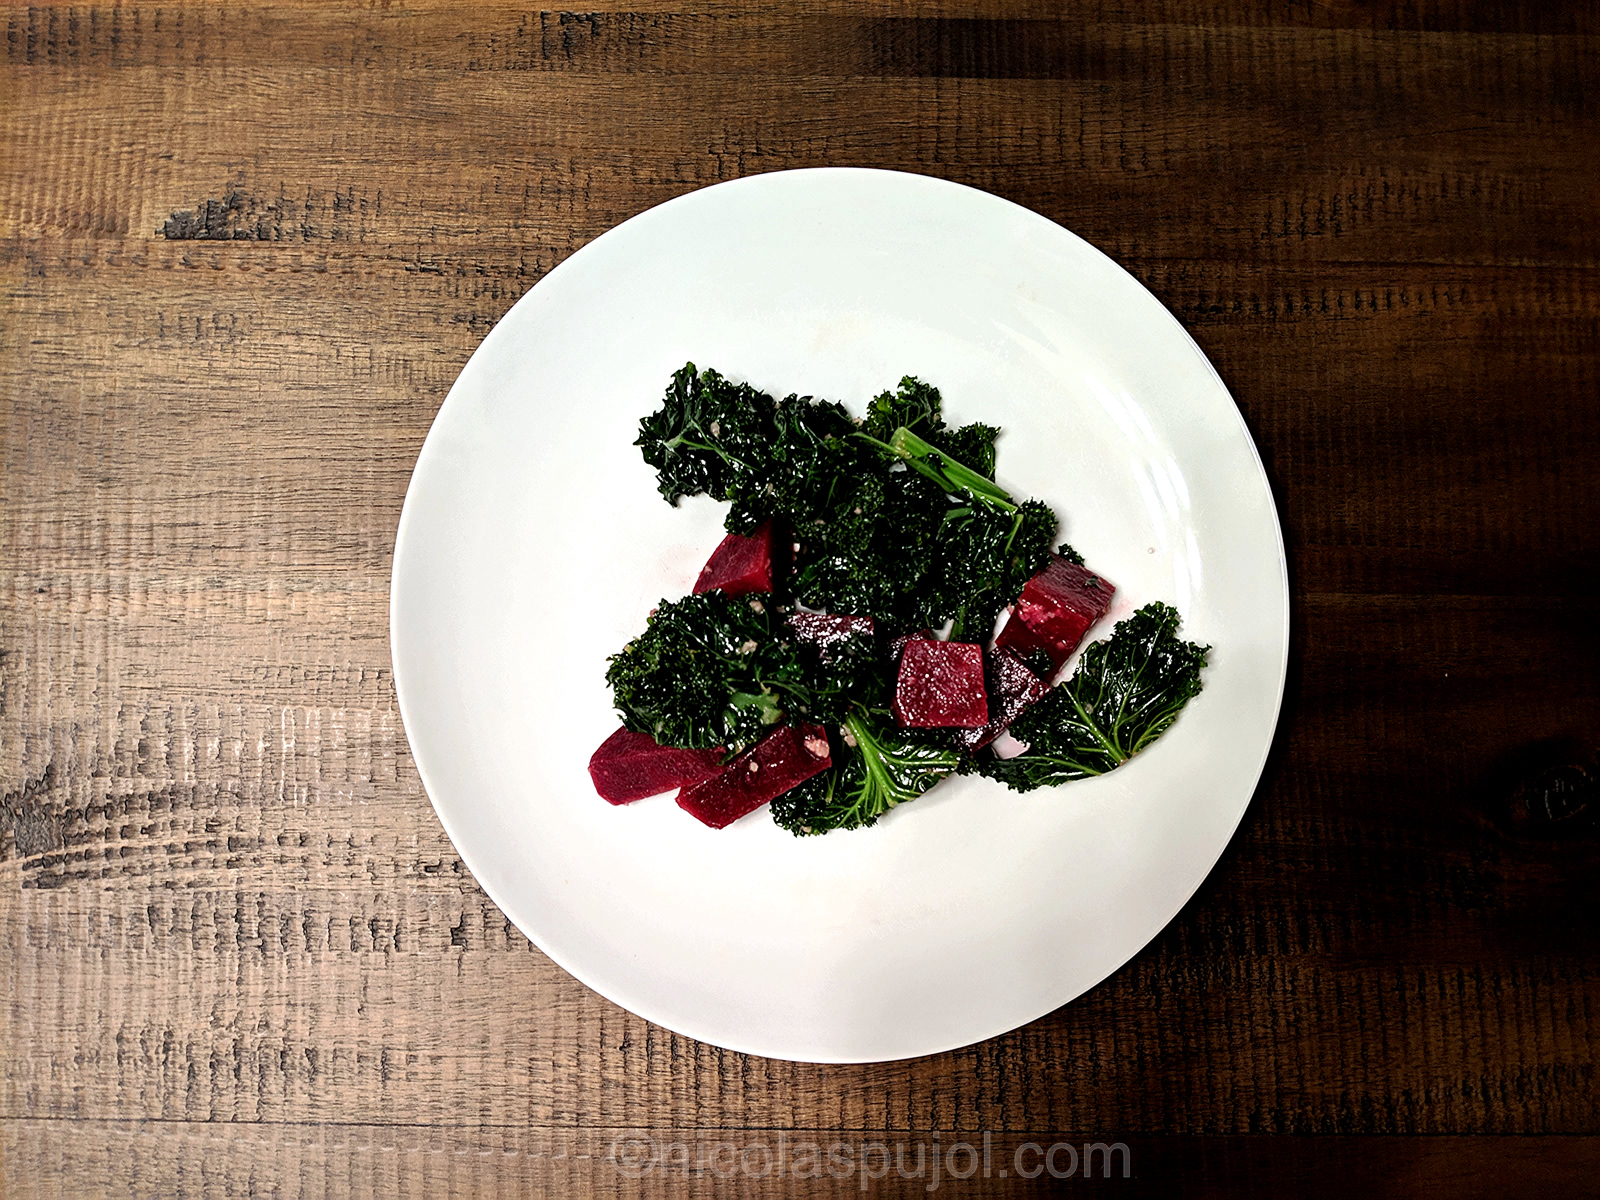 Kale and beet salad in lemon dressing